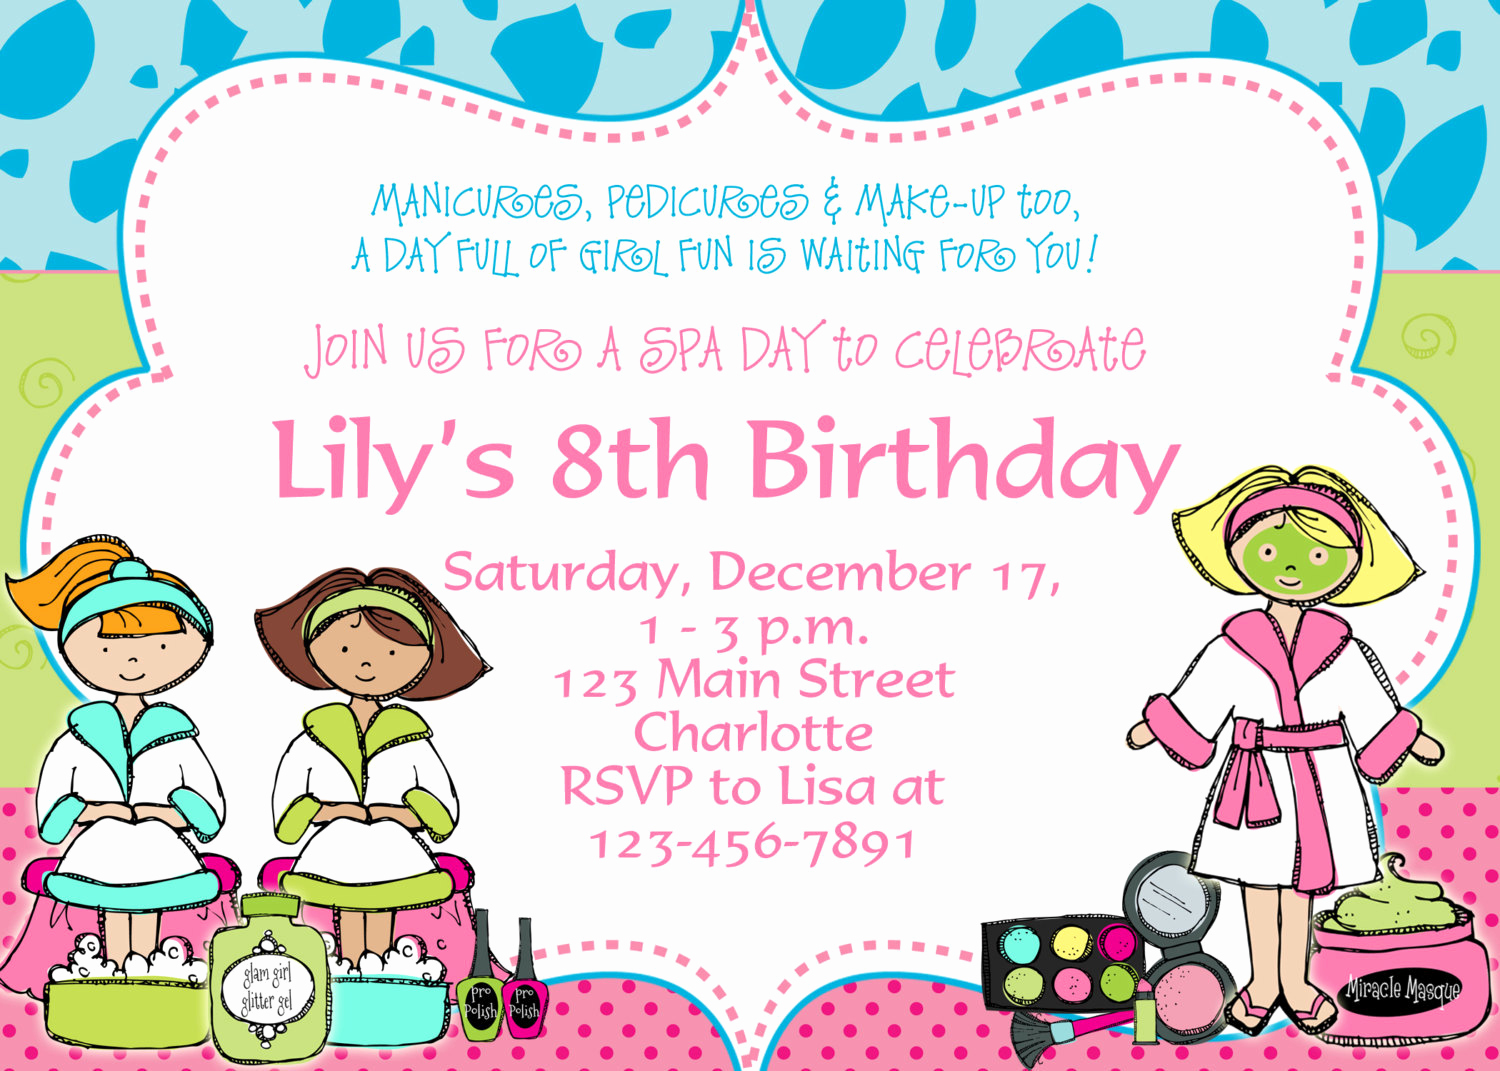 Spa Party Invitation Wording Fresh Spa Birthday Party Invitation Spa Birthday by